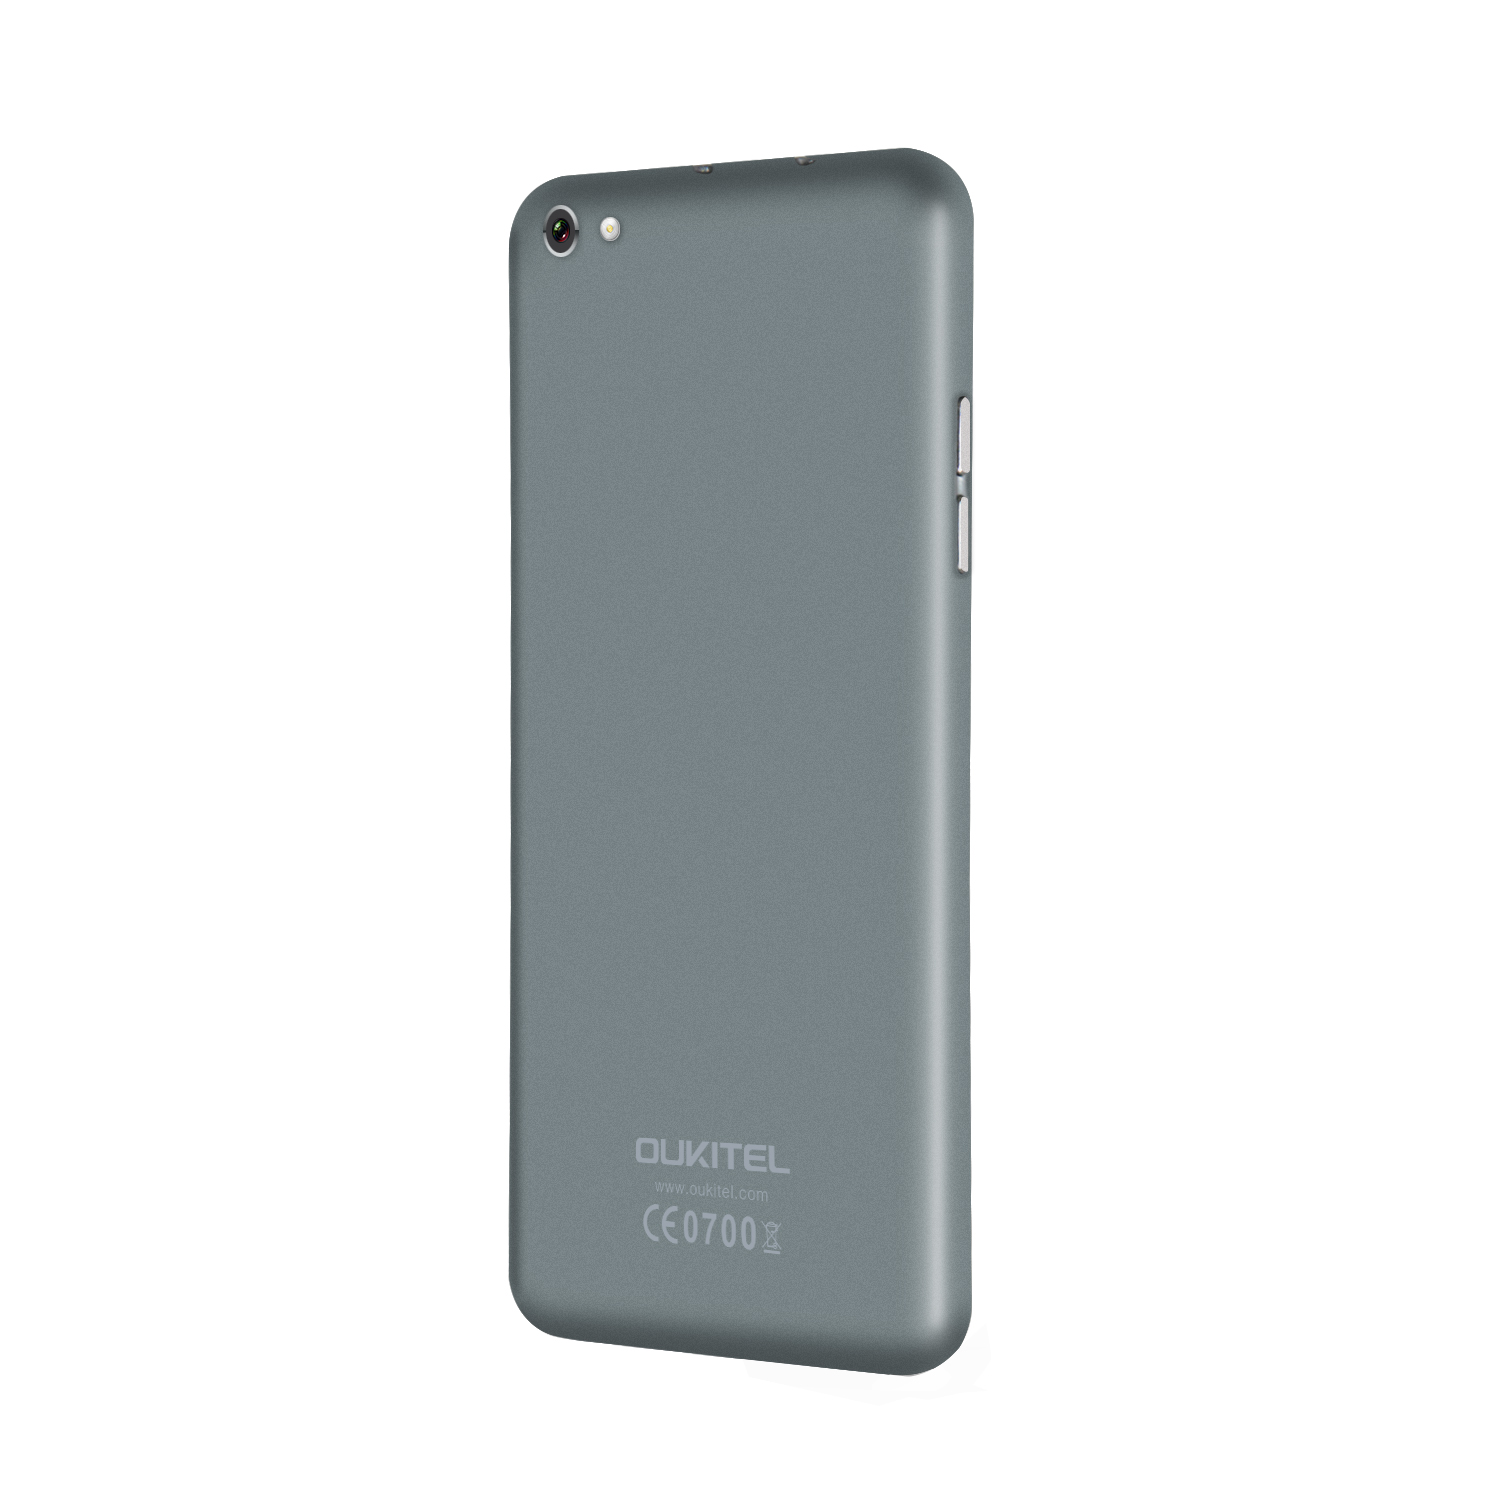 OUKITEL U7 Smartphone 5.5 Inch IPS Screen MTK6582 Quad Core 1GB 8GB Android 4.4 Gray